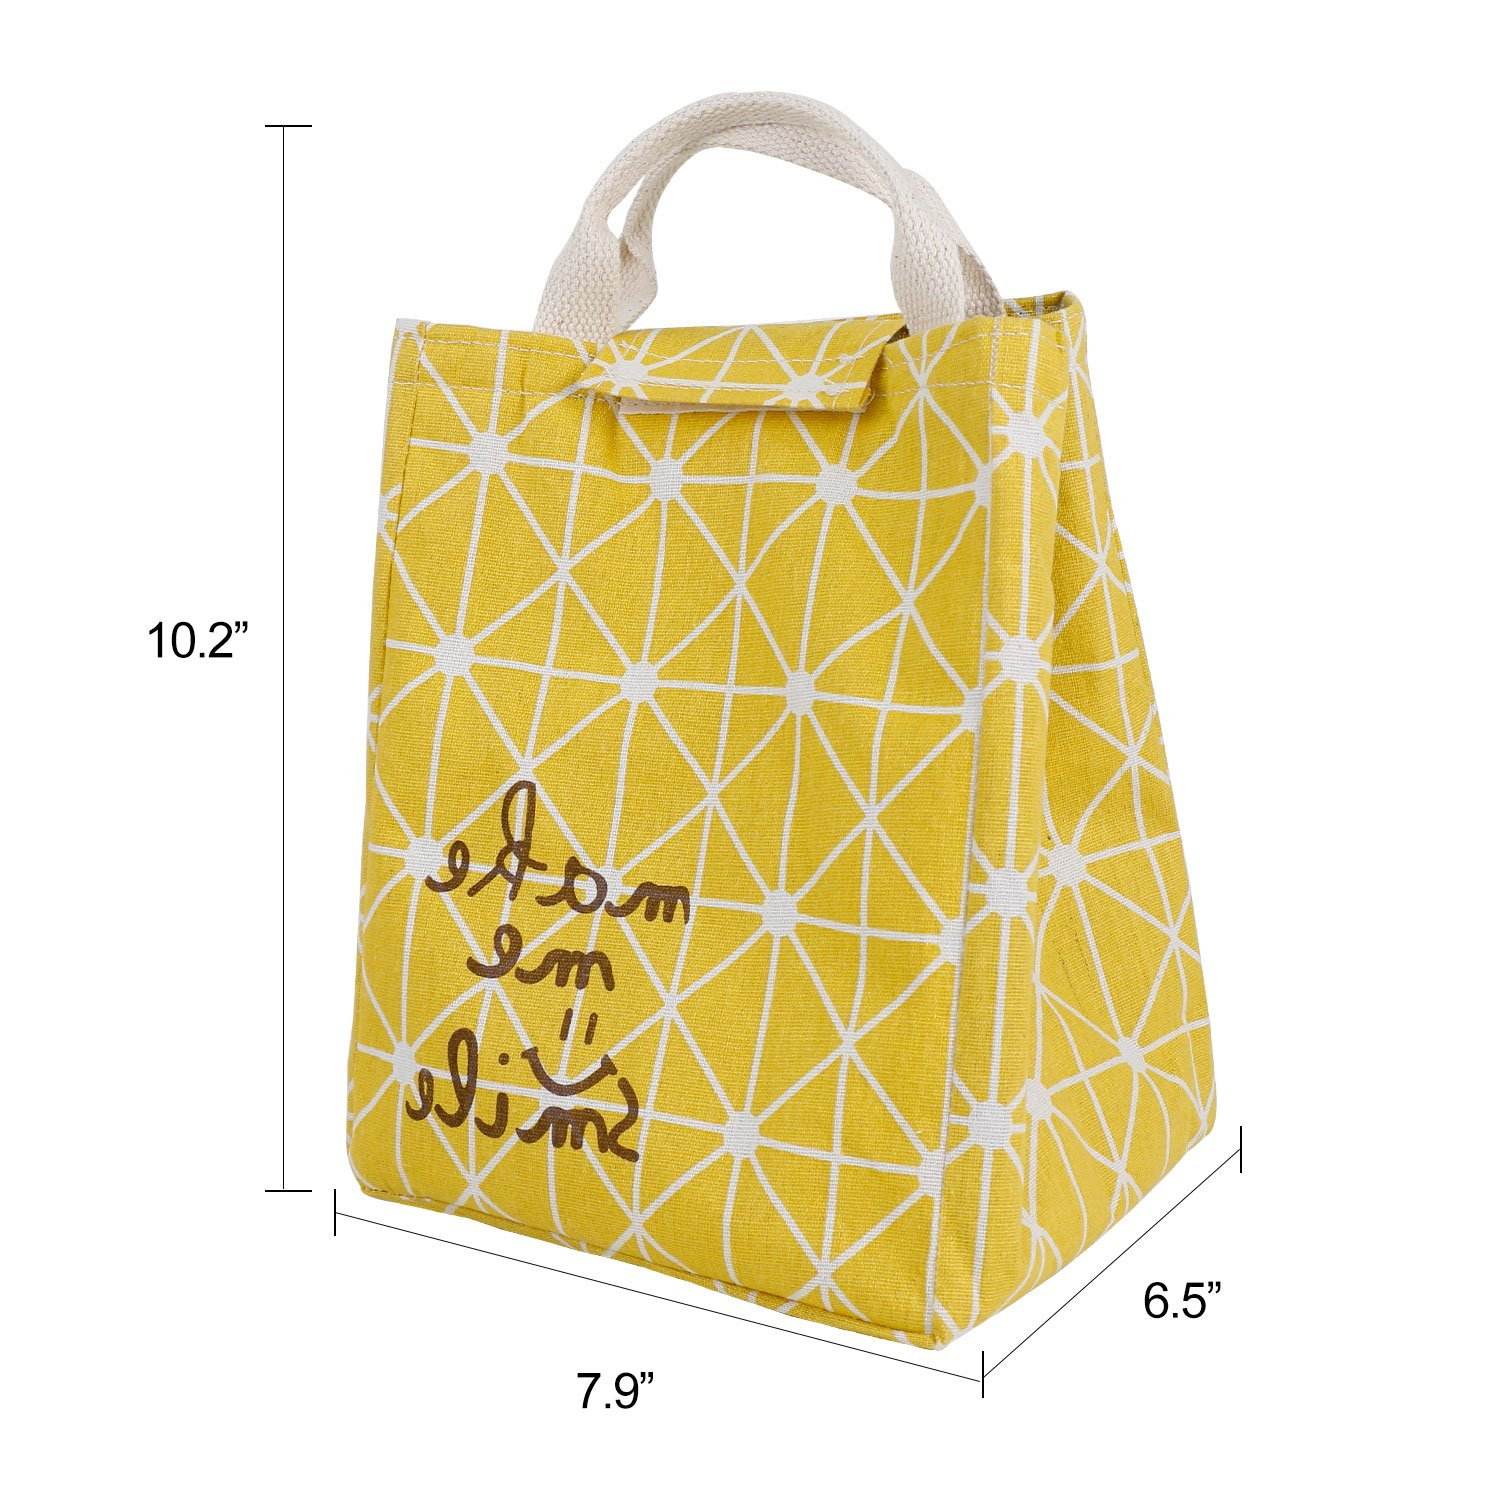 HOMESPON Reusable Lunch Bags Printed Canvas Fabric with Insulated Waterproof Aluminum Foil, Lunch Box for Women, Kids, Students (Rhombus Pattern-Yellow) by HOMESPON (Image #4)